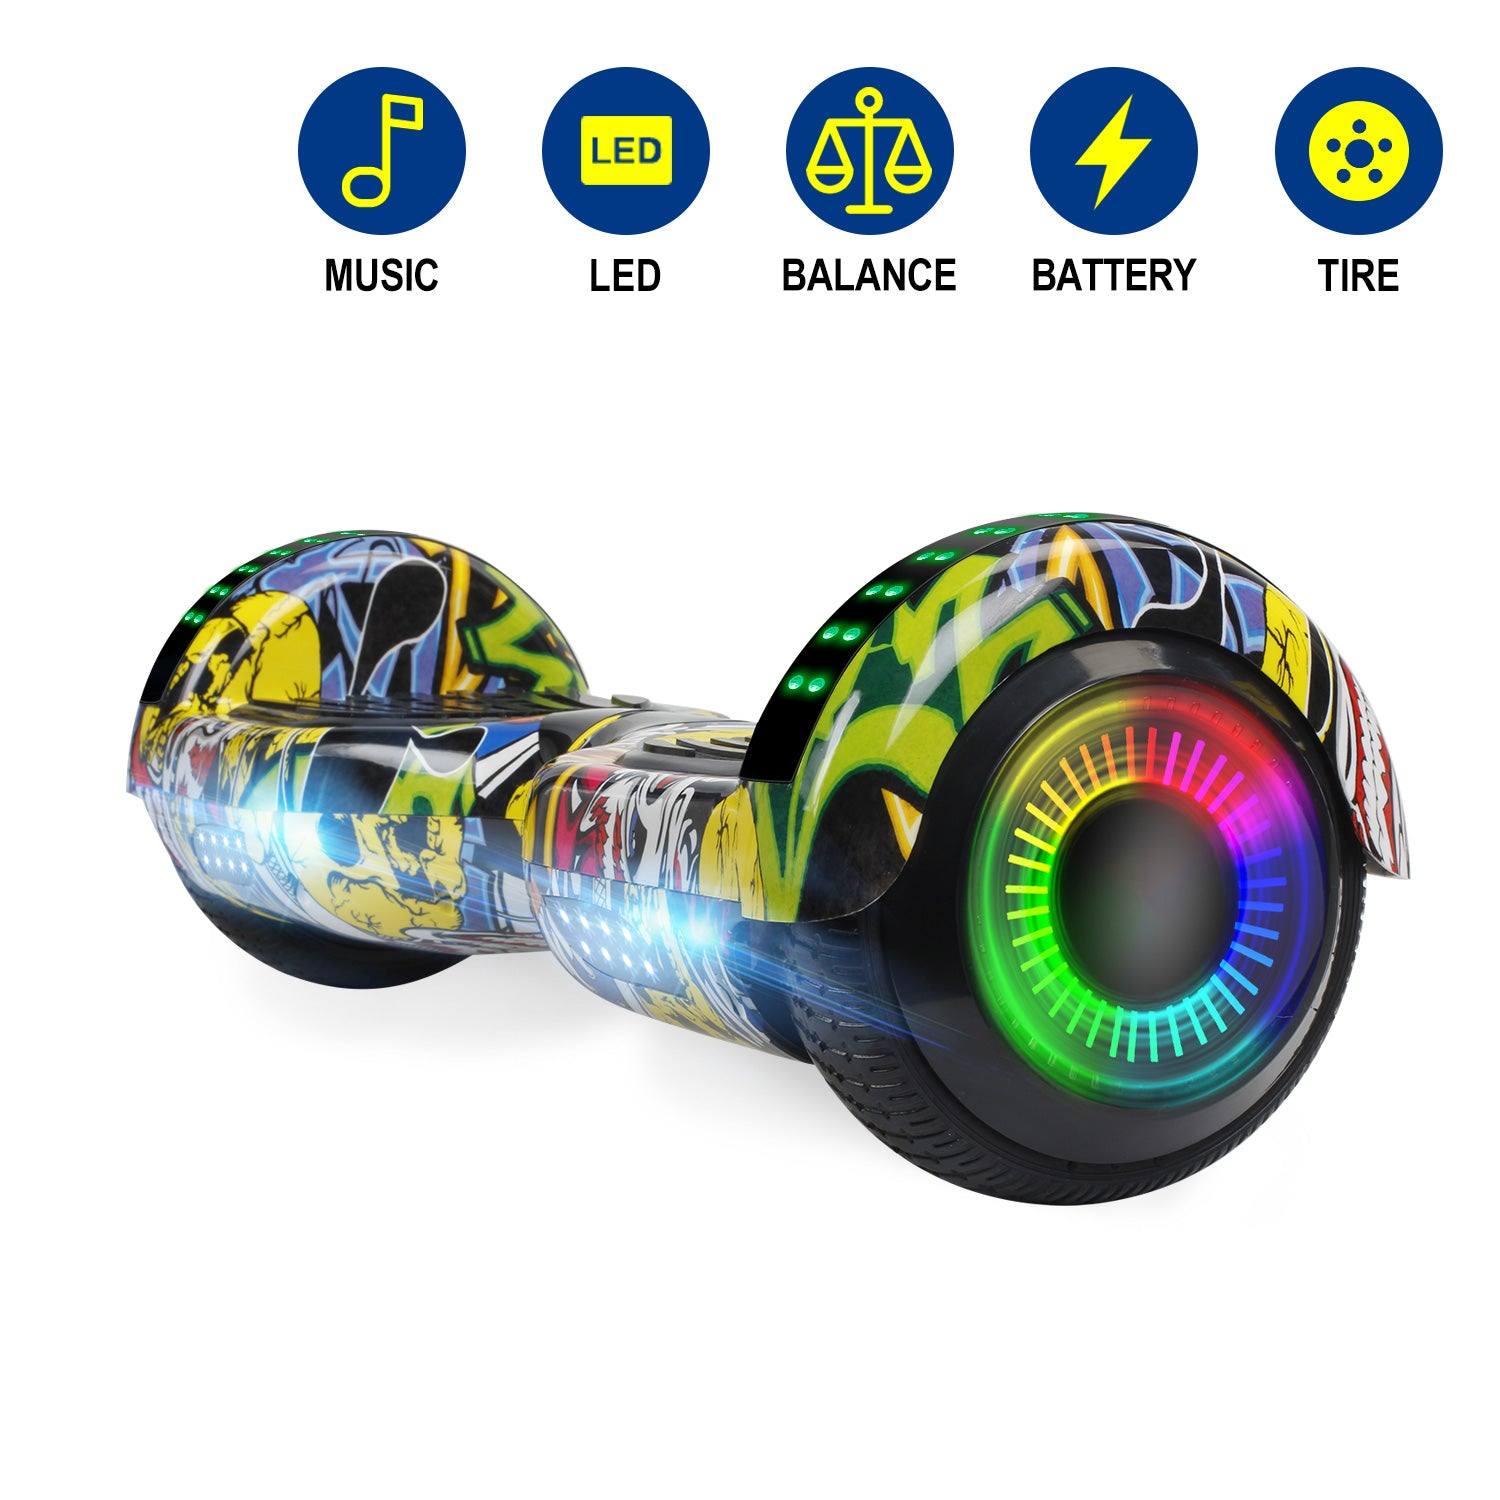 YHR 6.5 Inch Hoverboard with Bluetooth W/Speaker, LED Wheels and LED Lights for Kids and Adult- Fun series